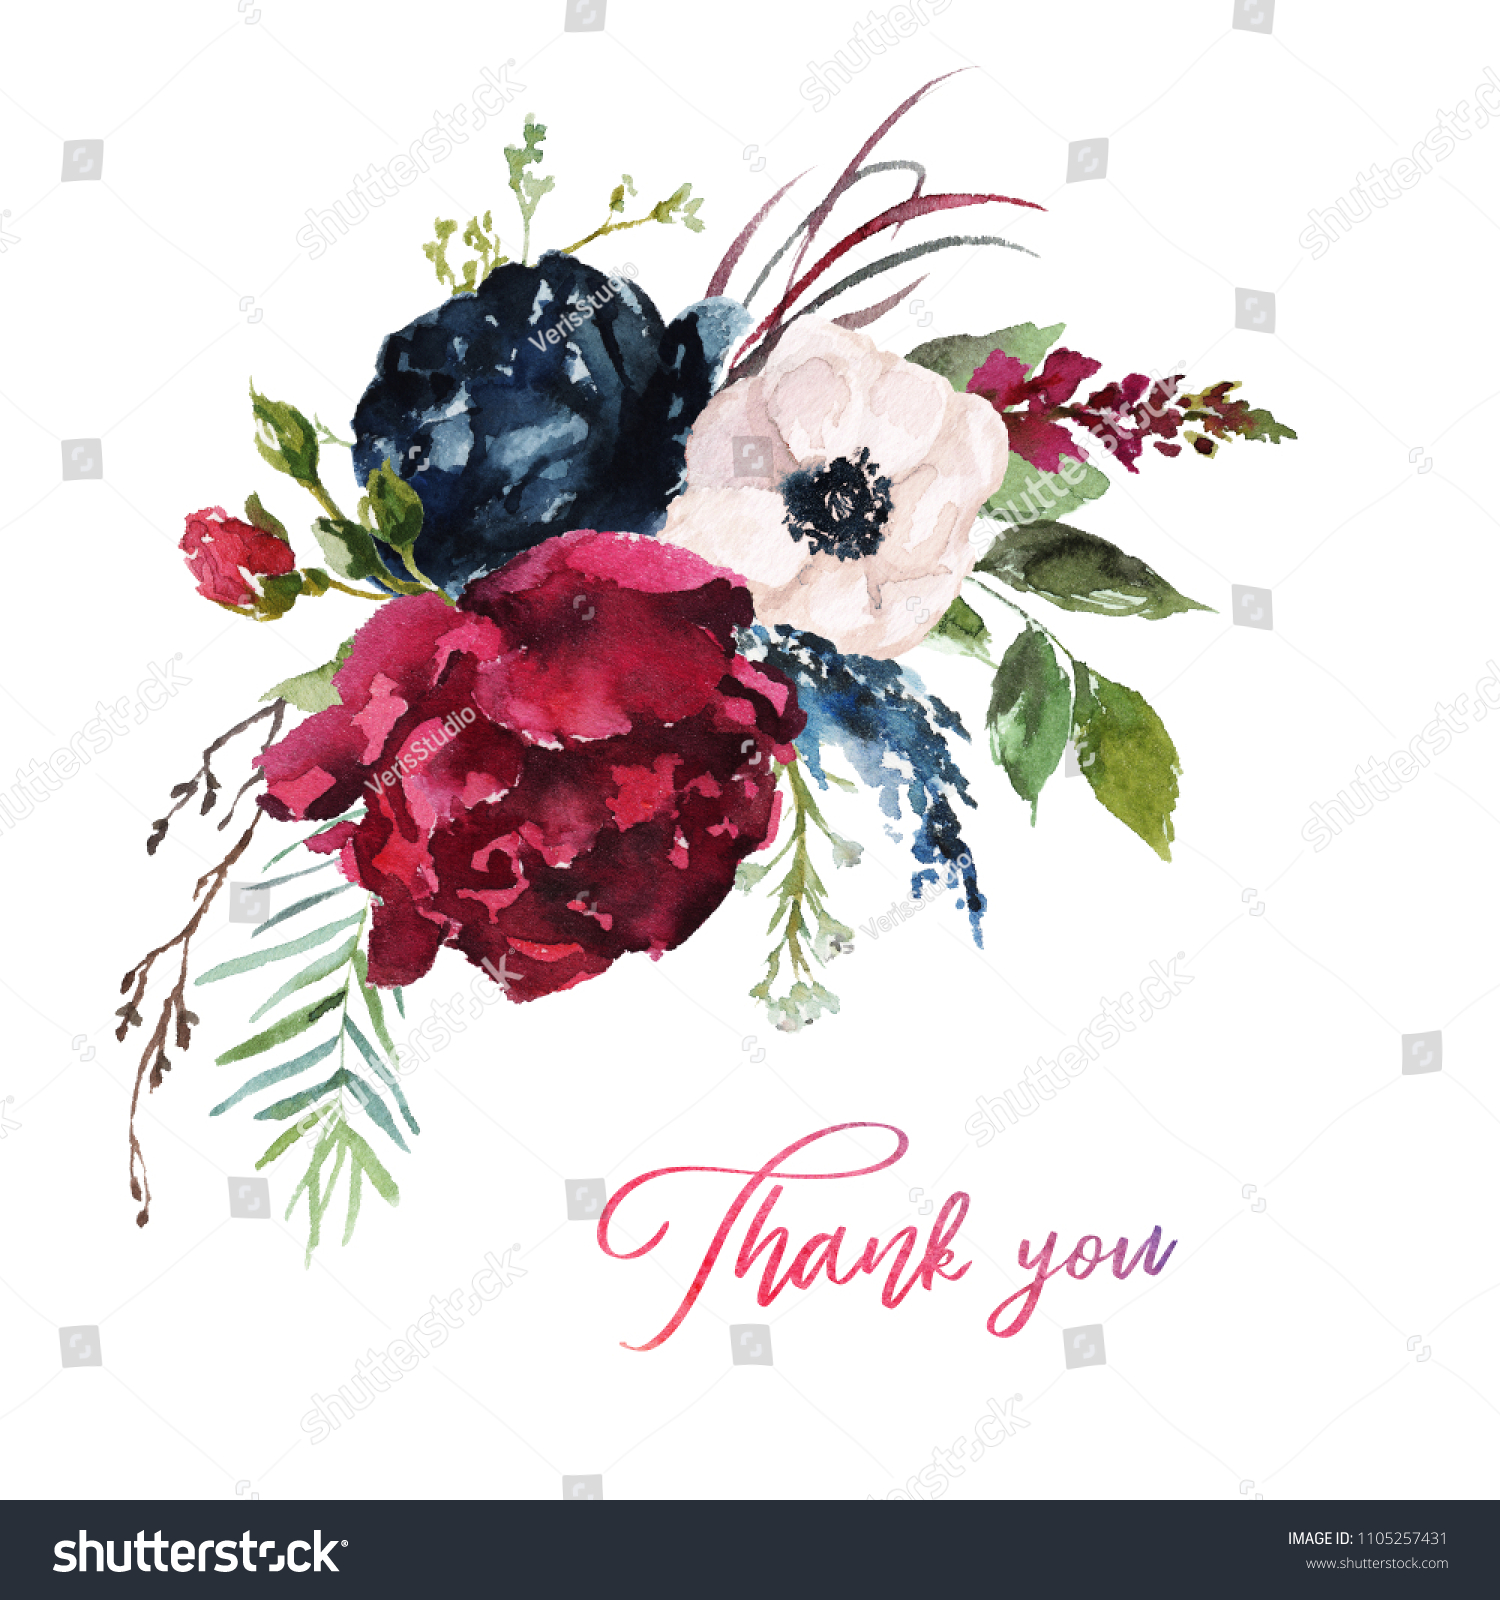 Watercolor Floral Illustration Flowers Burgundy Bouquet Stock Illustration 1105257431